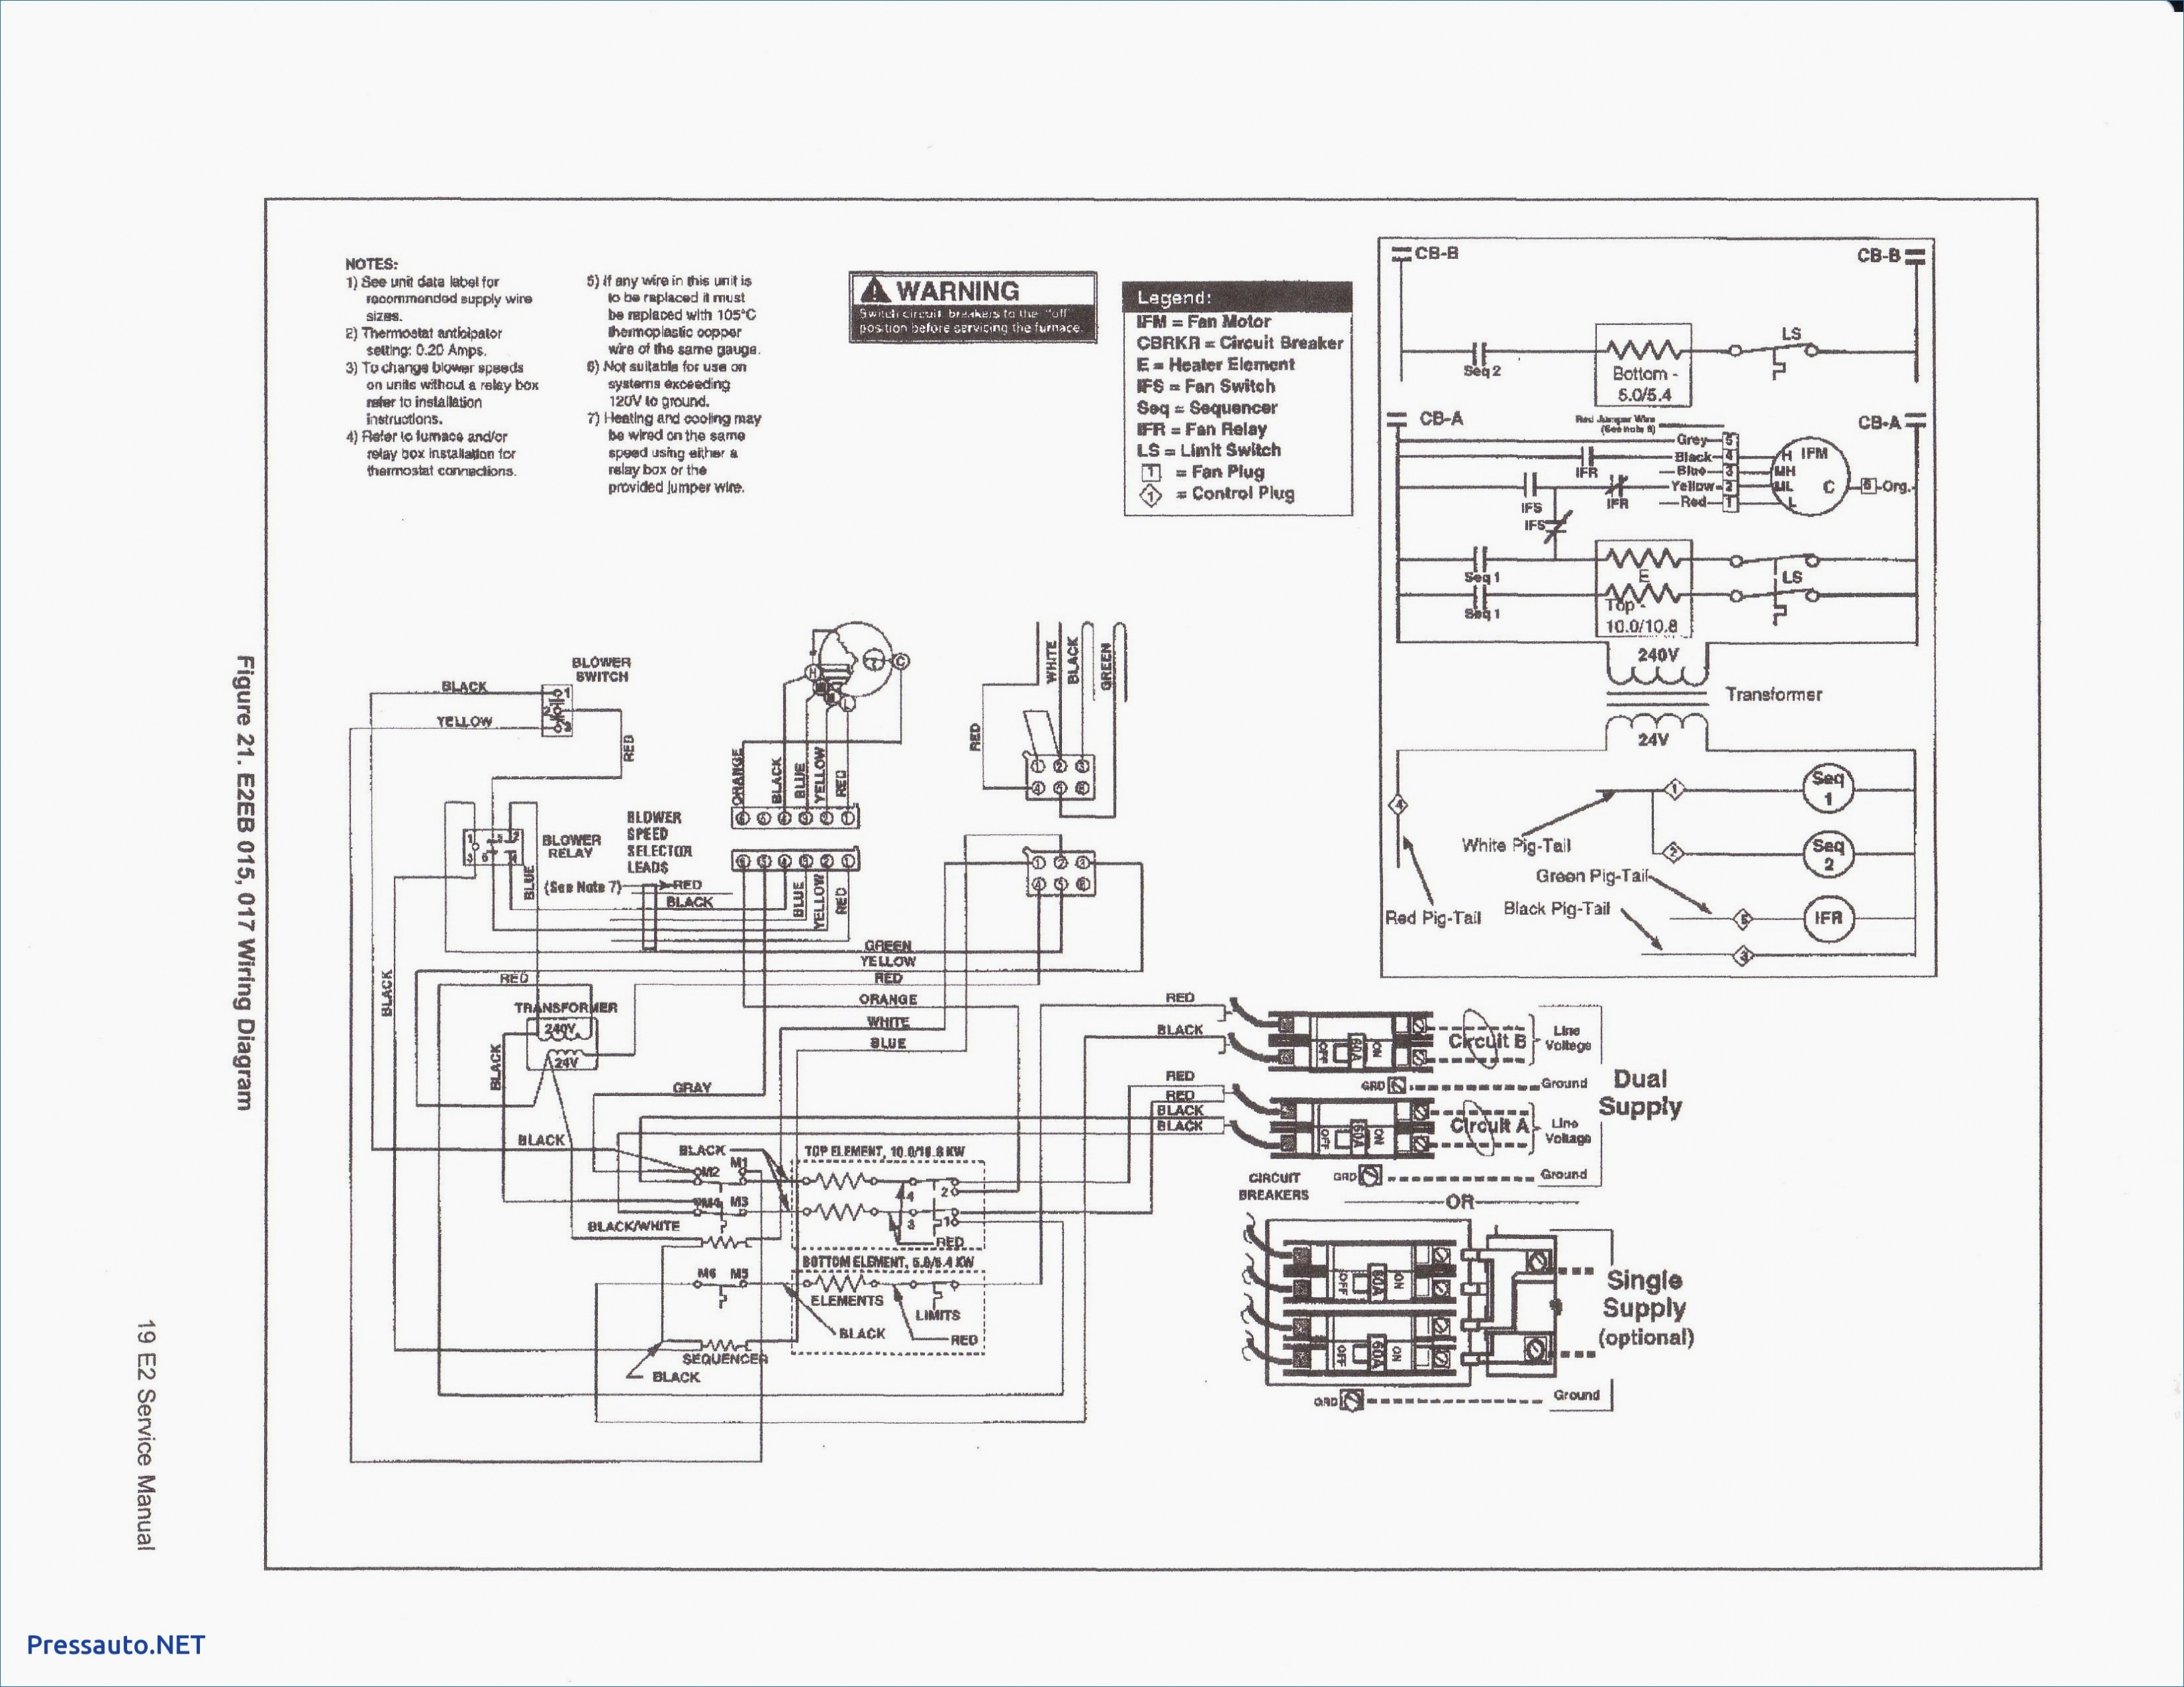 Goodman Furnace Thermostat Wiring Diagram from 2020cadillac.com